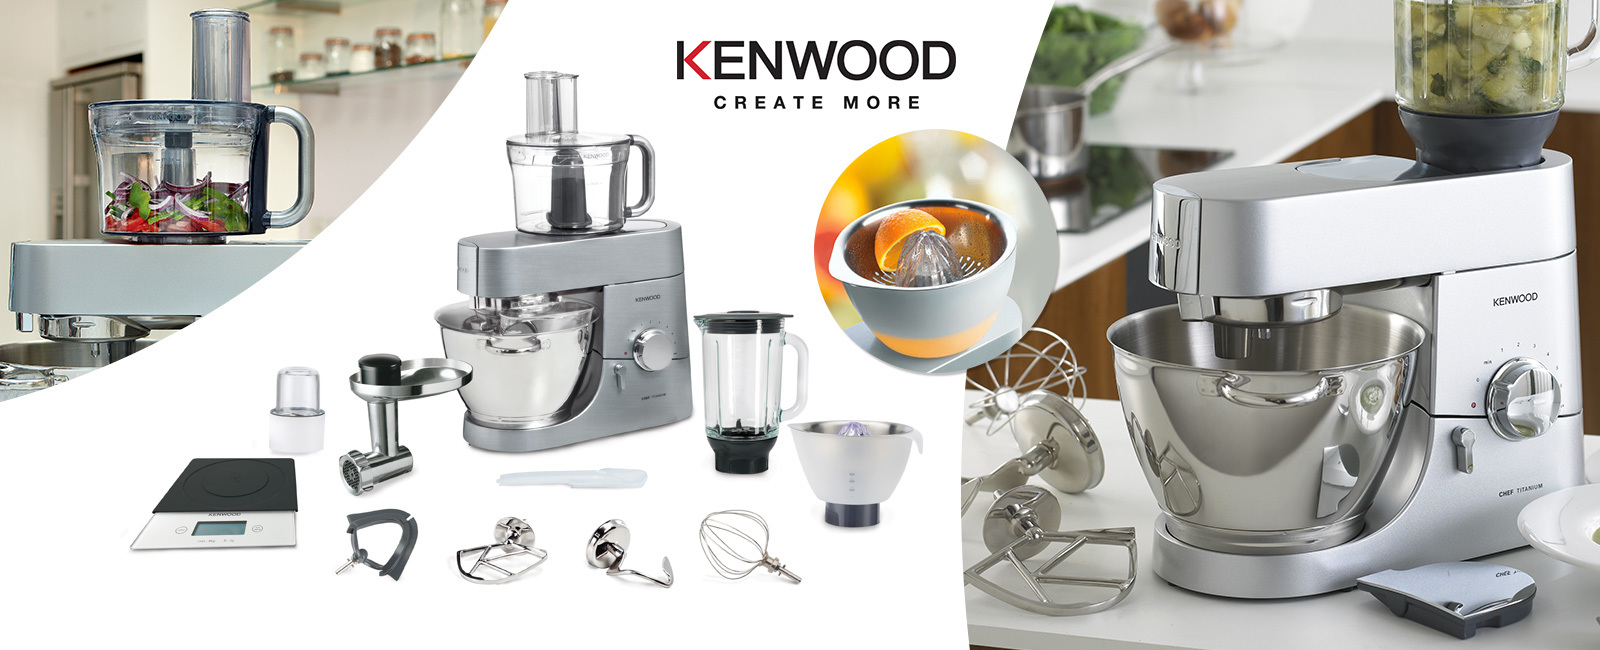 Kenwood Chef Titanium Free Kenwood Stand Mixer Review With